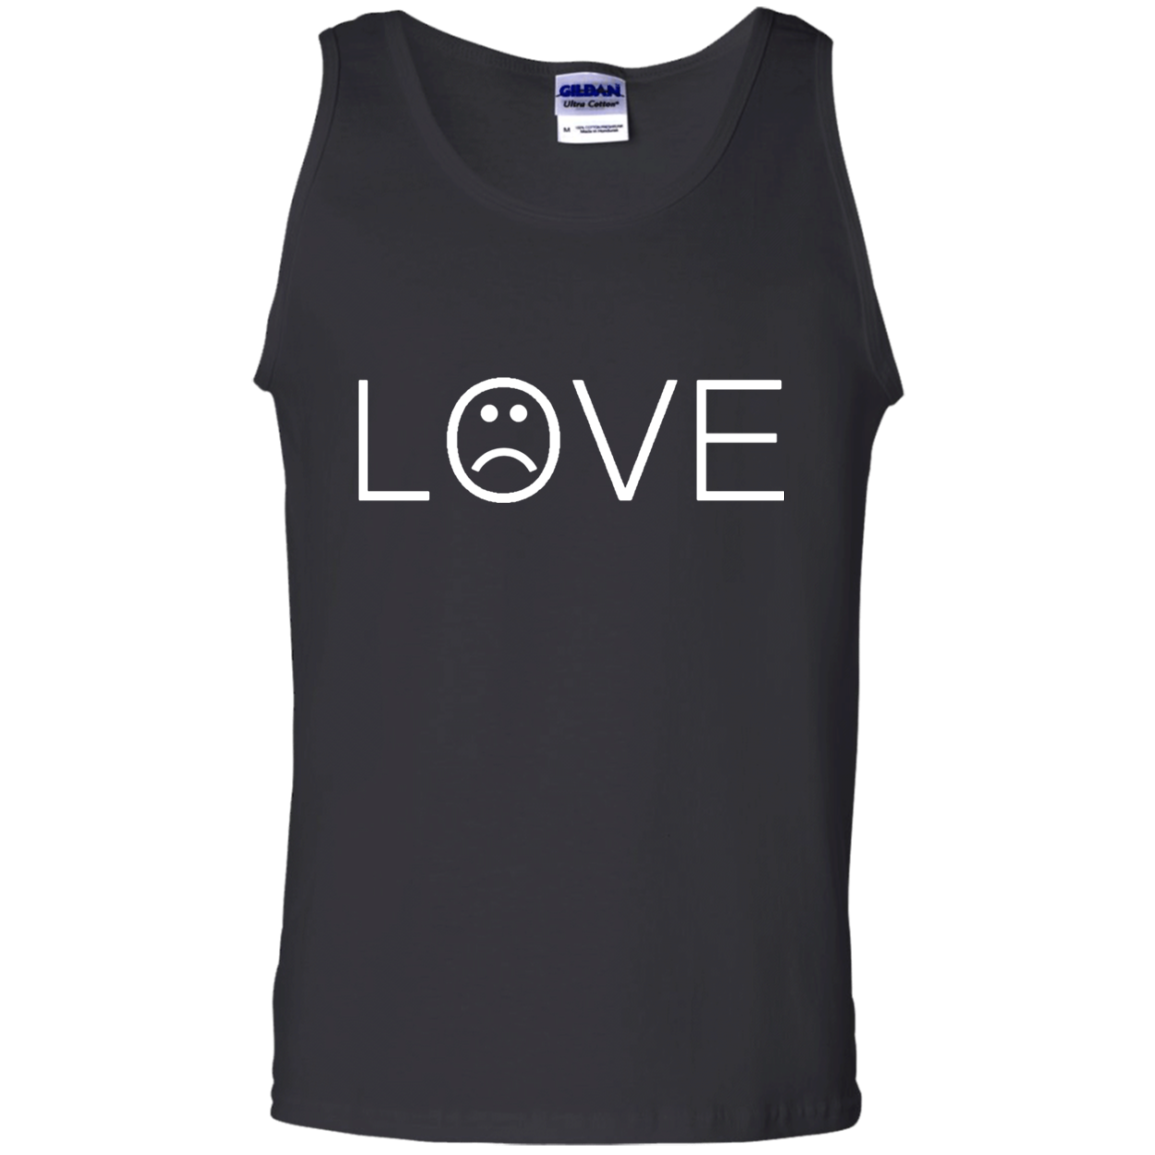 Lil Peep Tank Top Love Sad Emotion